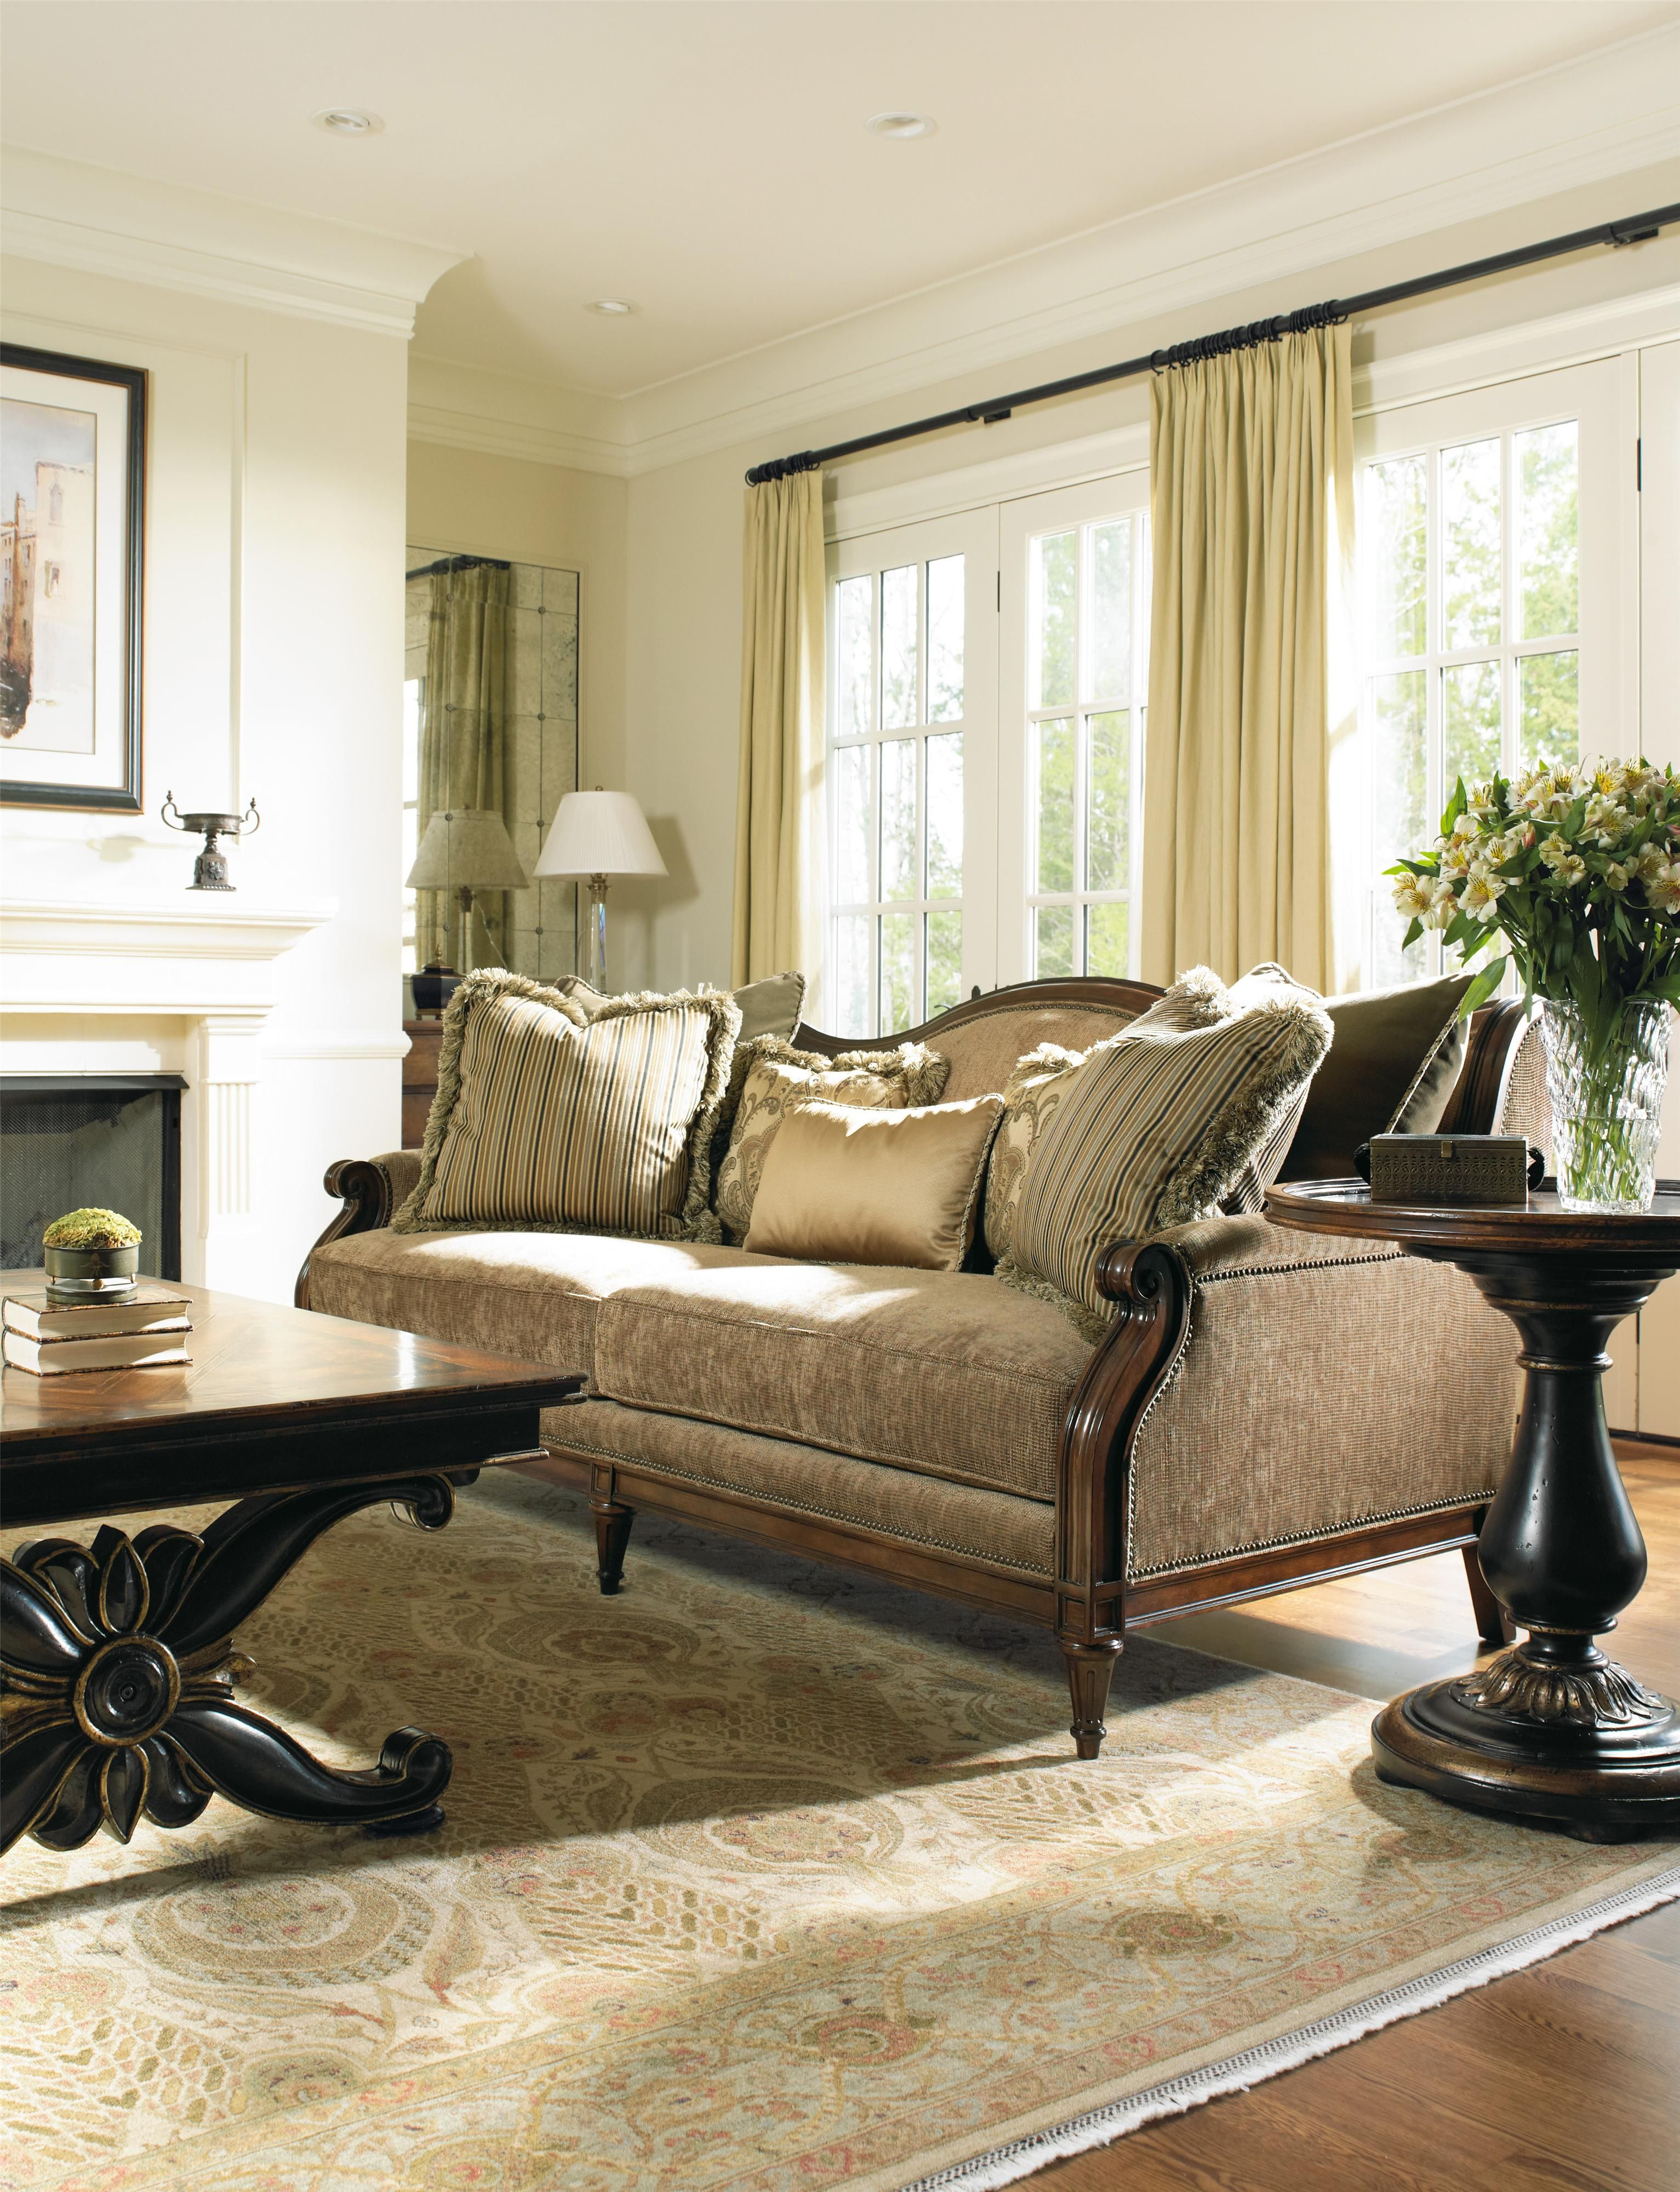 Awesome Grandover Camel Back Sofa With Exposed Wood Frame And Nailhead Trim By  Hooker Furniture   Gill